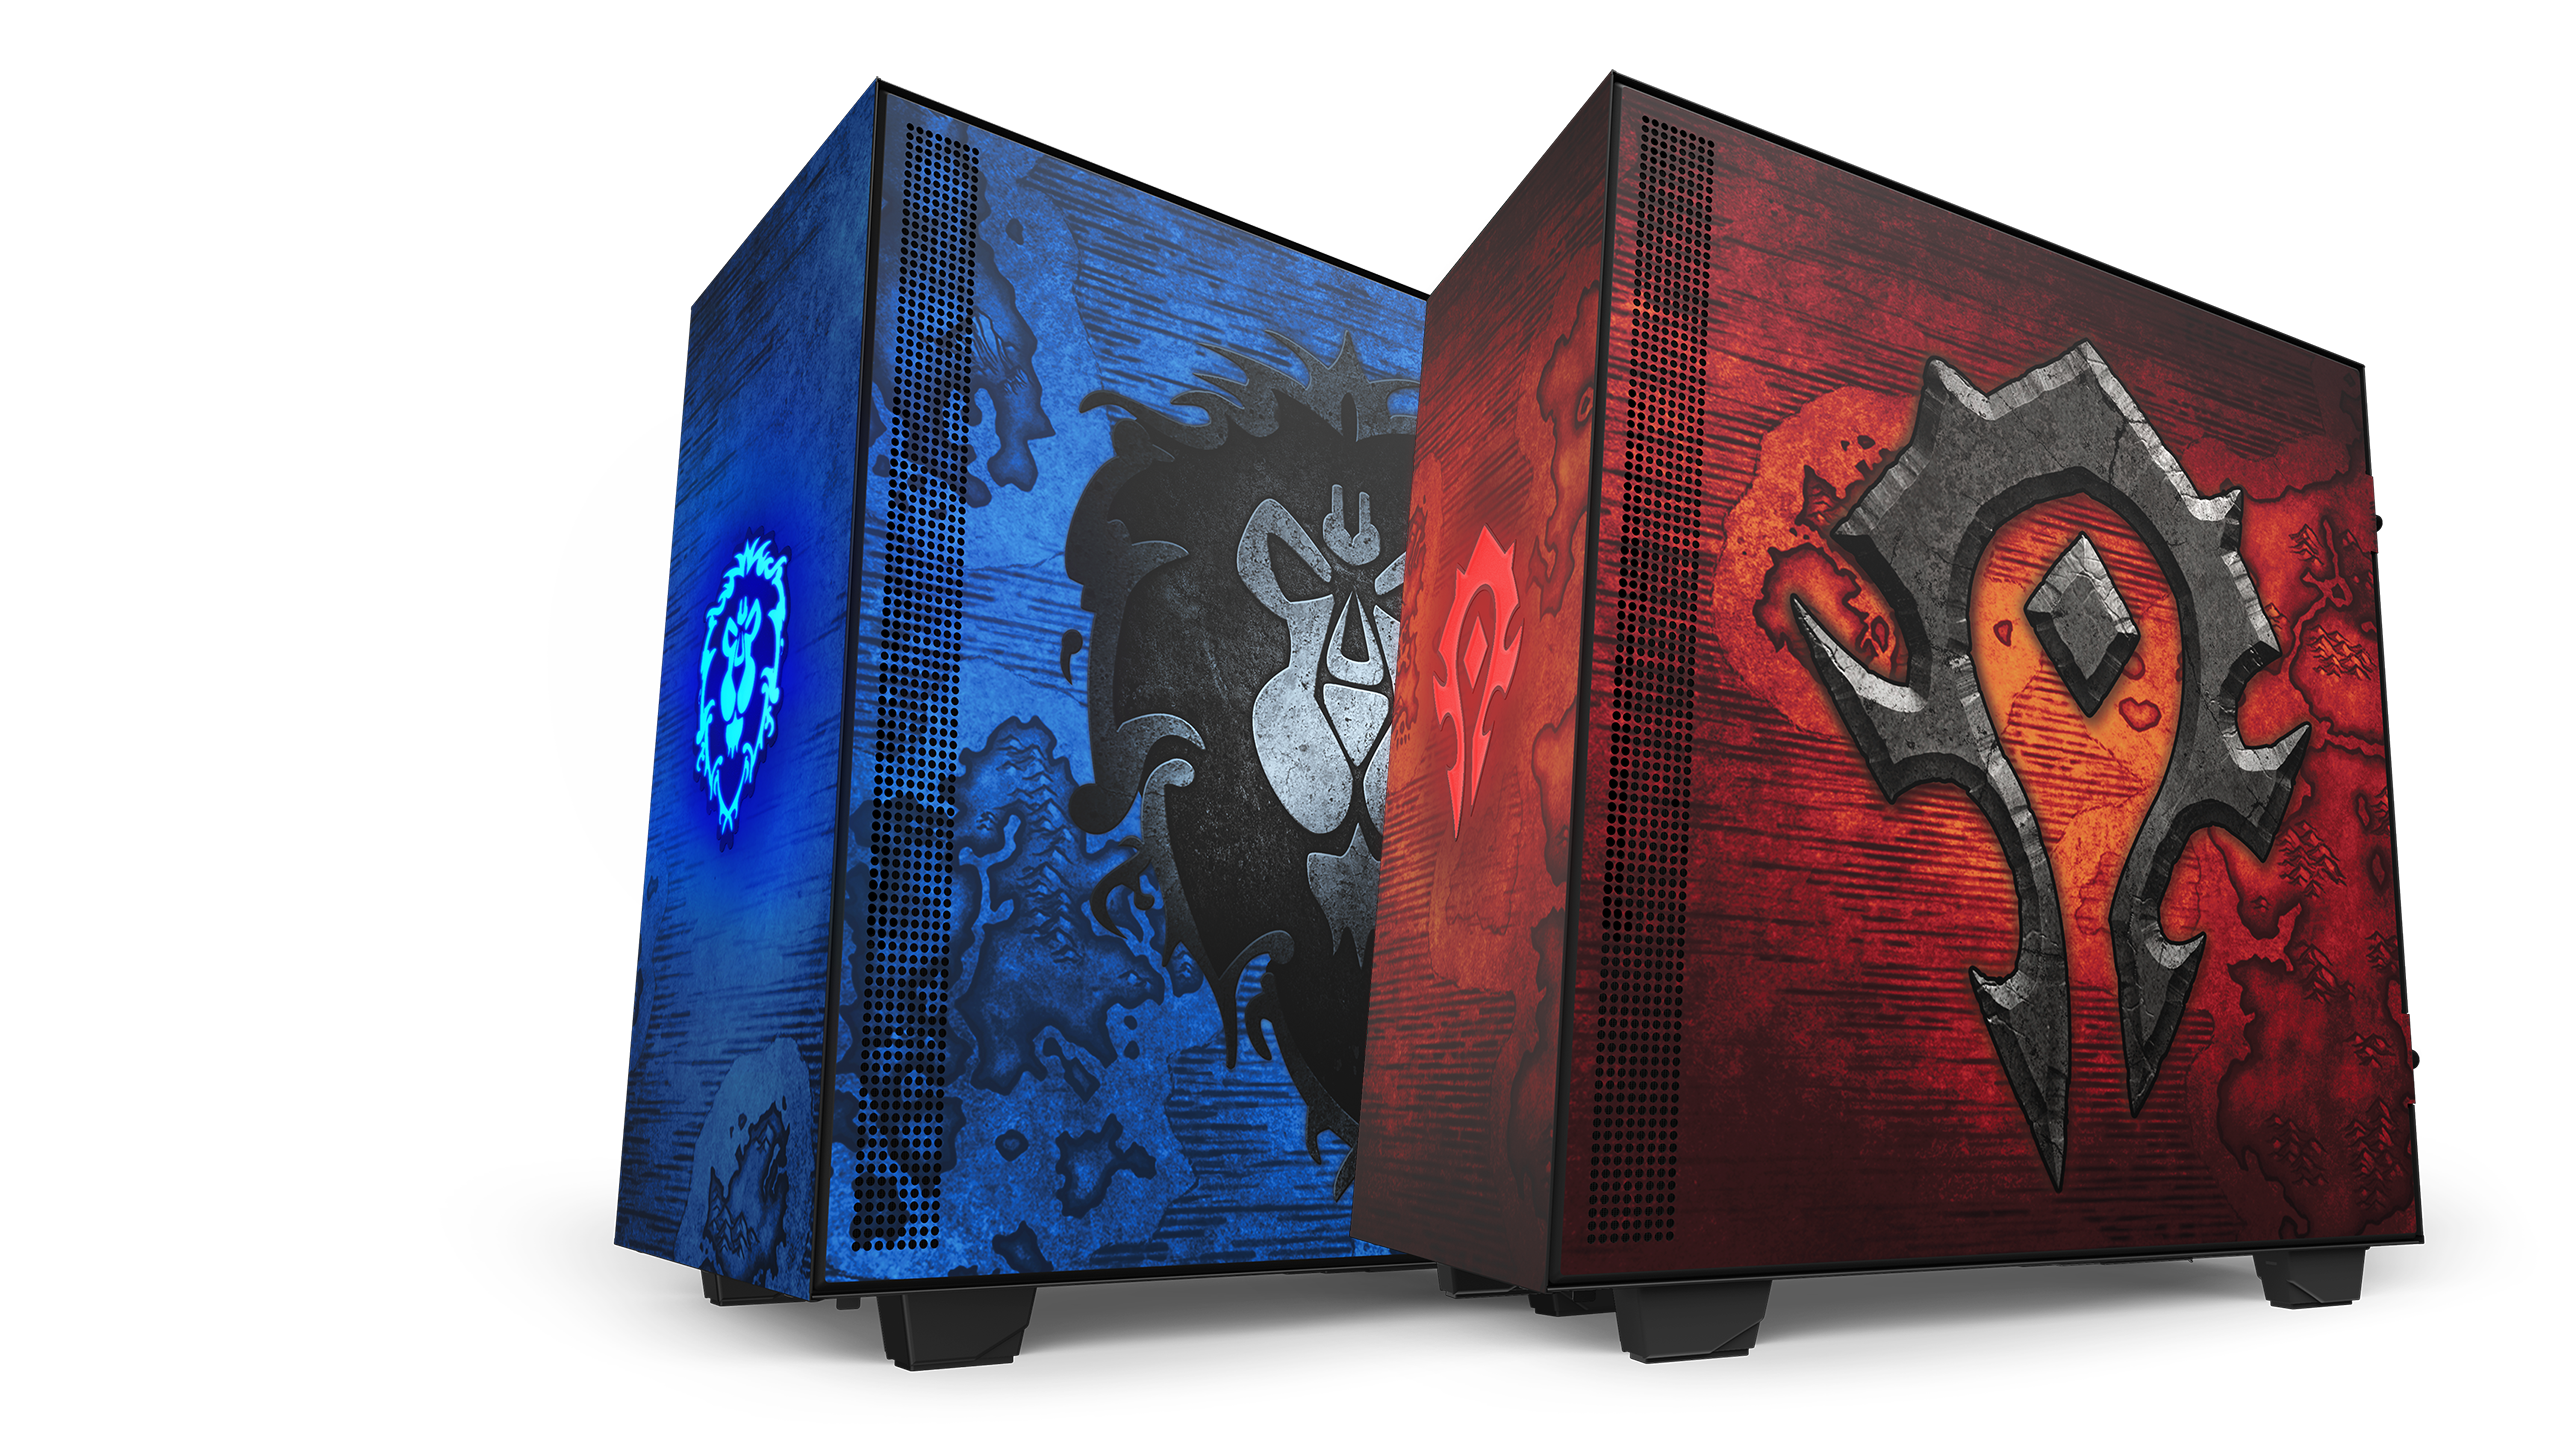 Custom World Of Warcraft PC Cases For The Horde (And The Alliance)